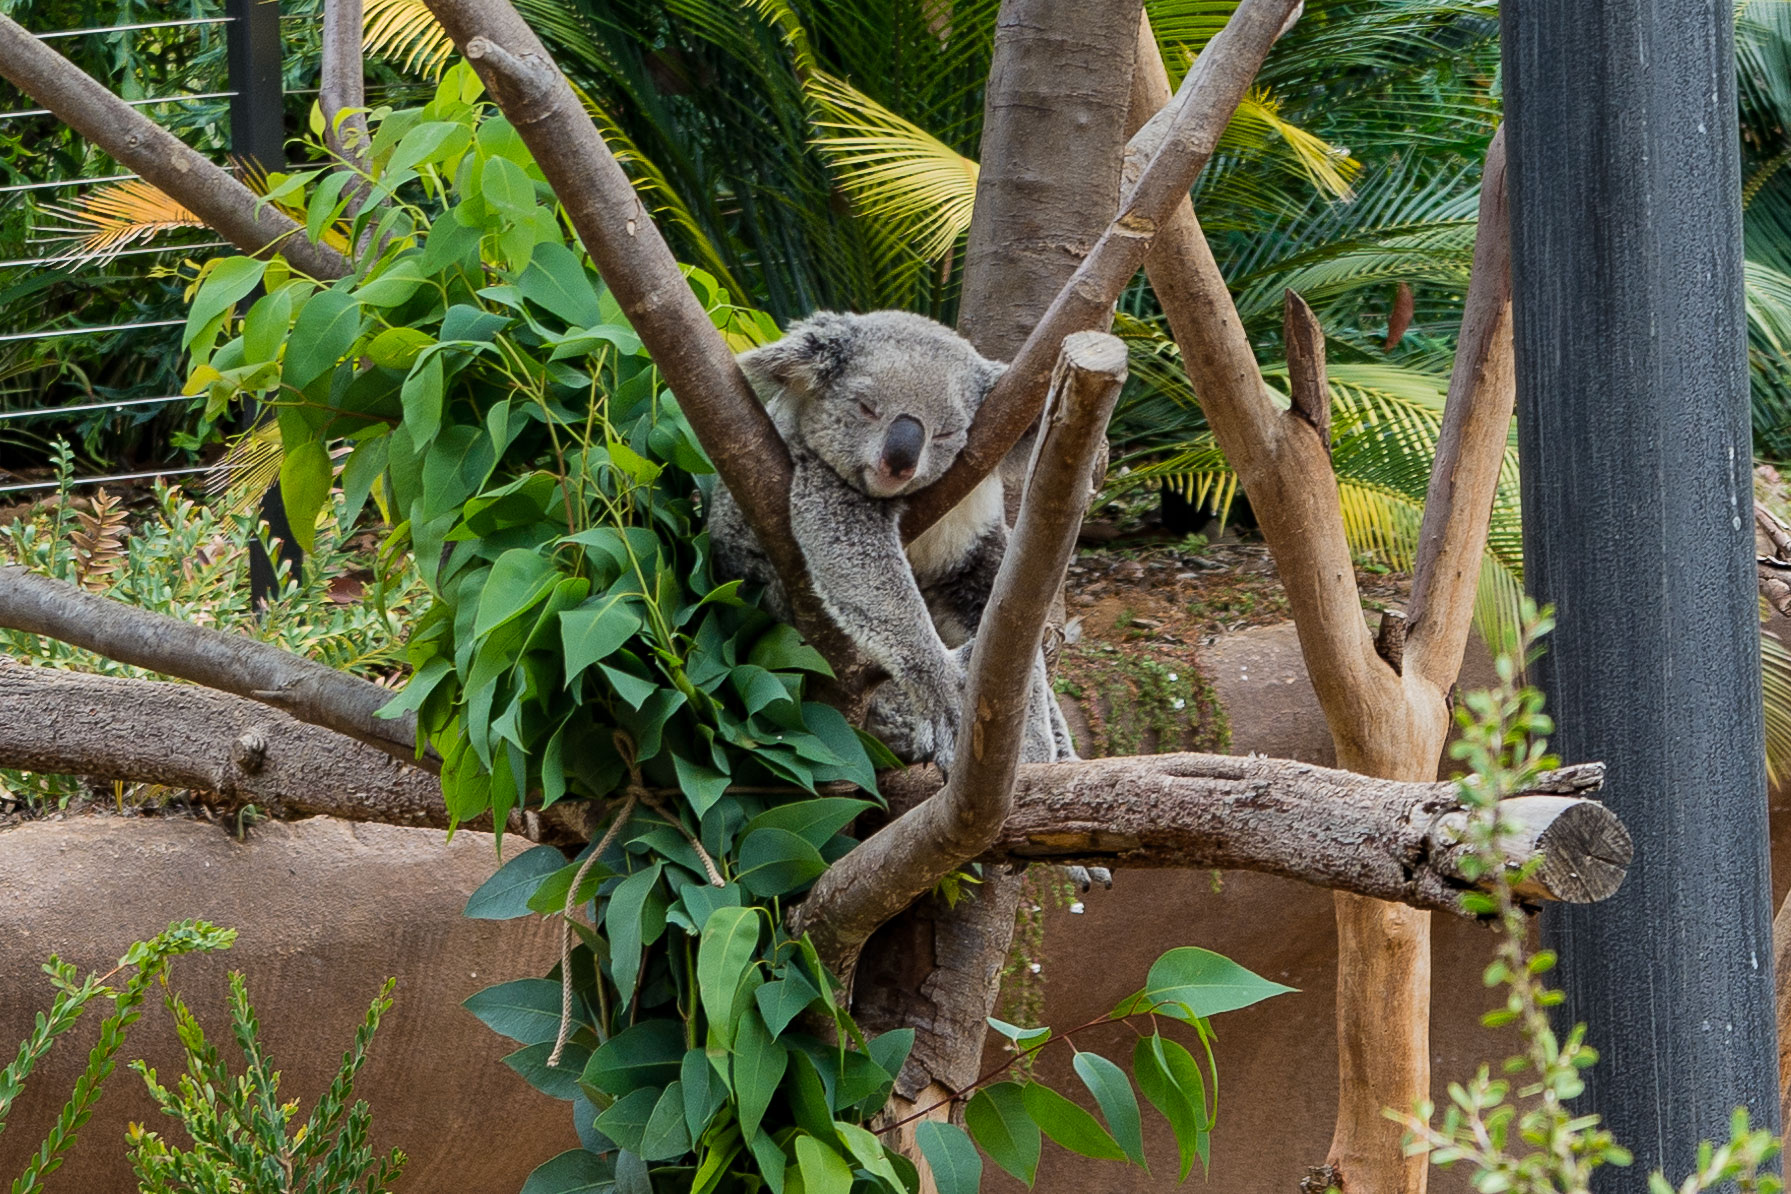 Koalas are cute.